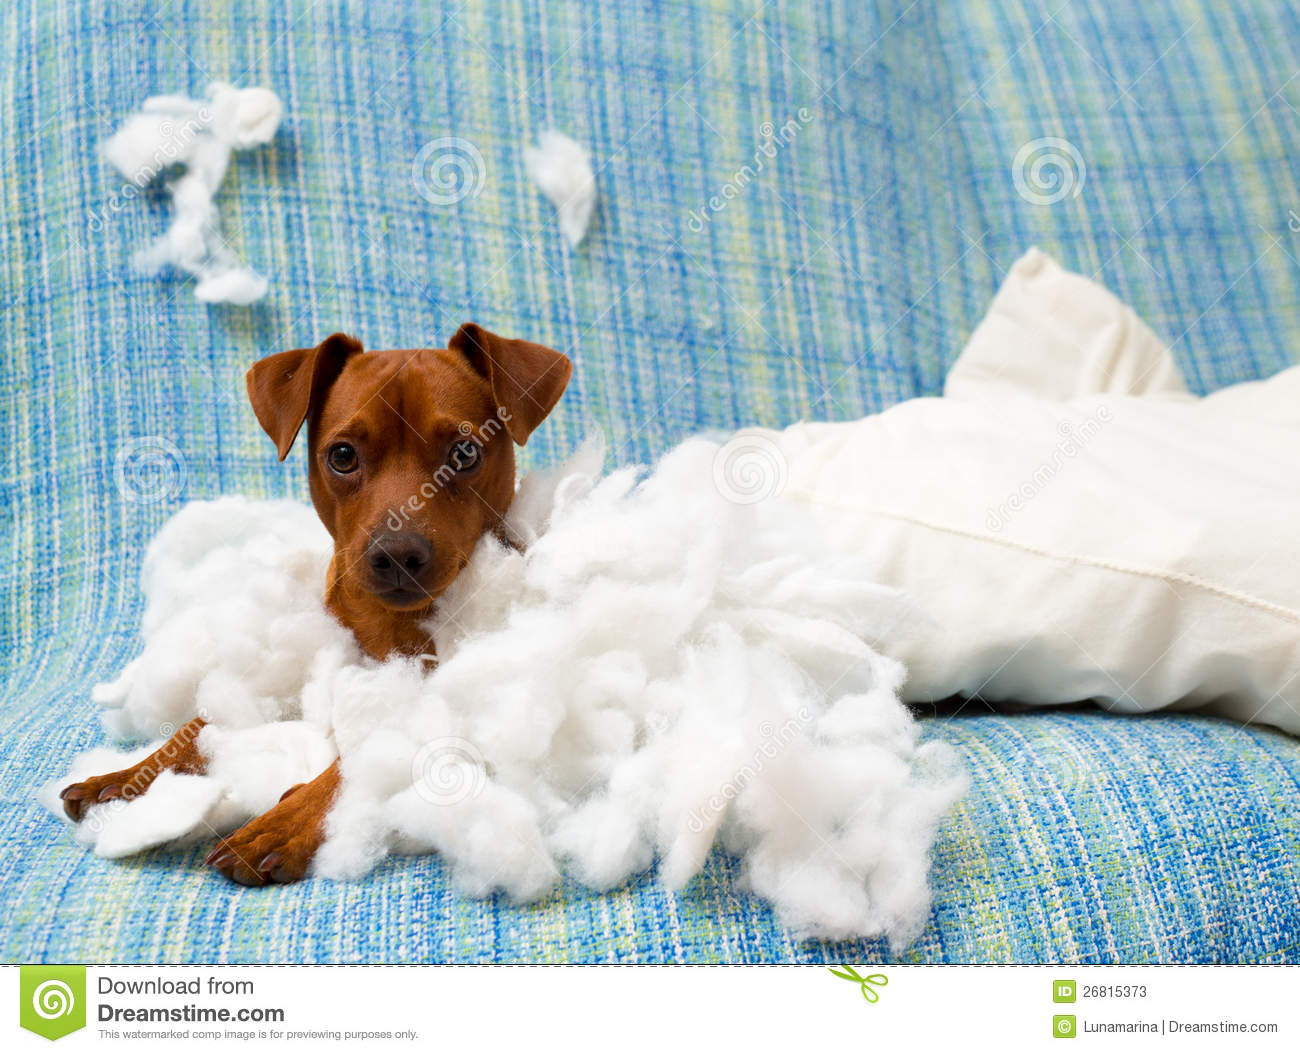 Naughty Playful Puppy Dog After Biting A Pillow Stock